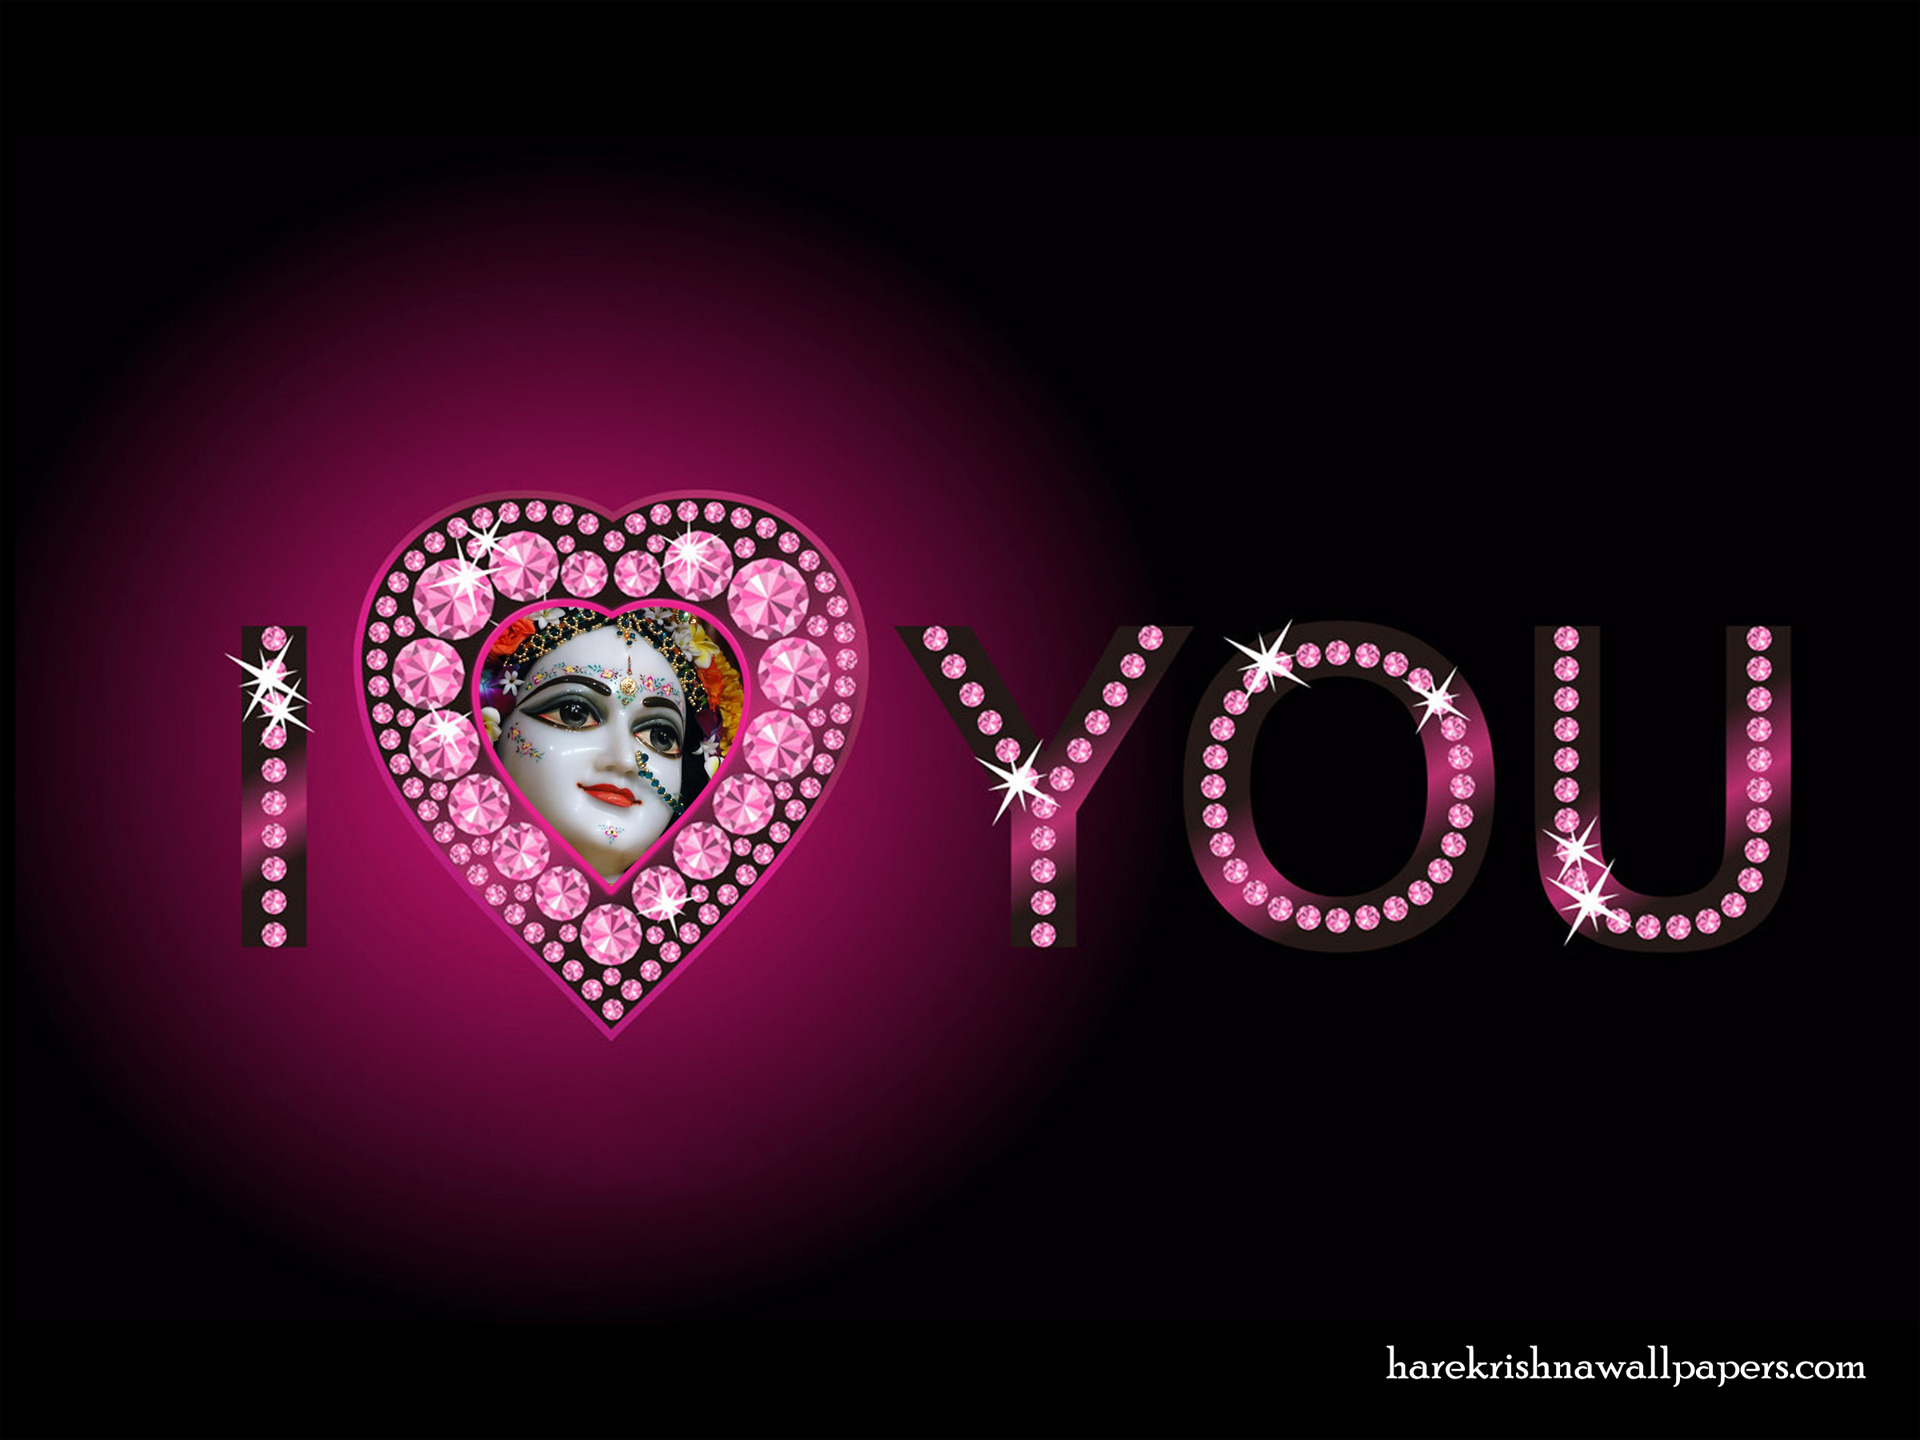 I Love You Radharani Wallpaper (013) Size 1920x1440 Download